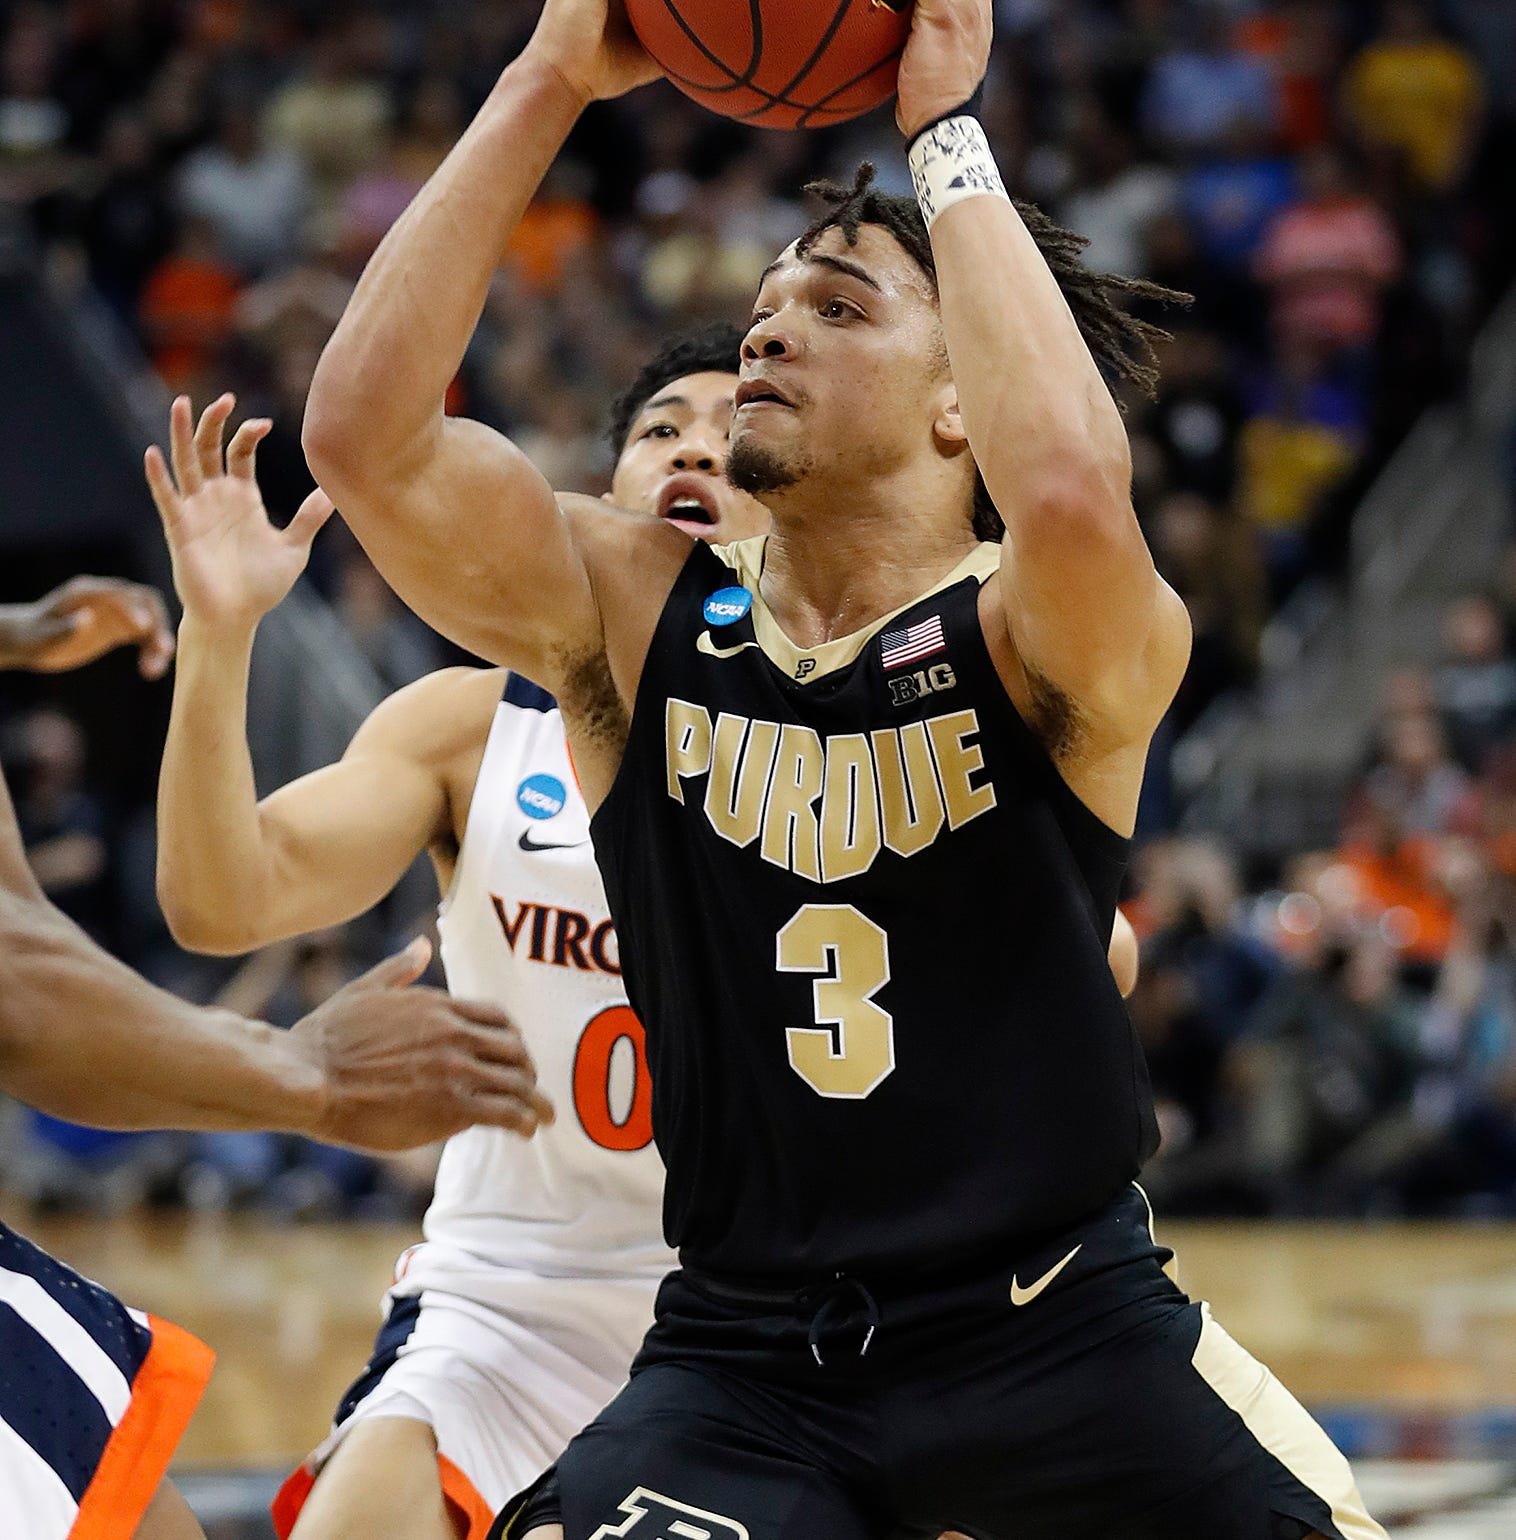 Doyel: Purdue's Carsen Edwards and a 'performance for the ages'